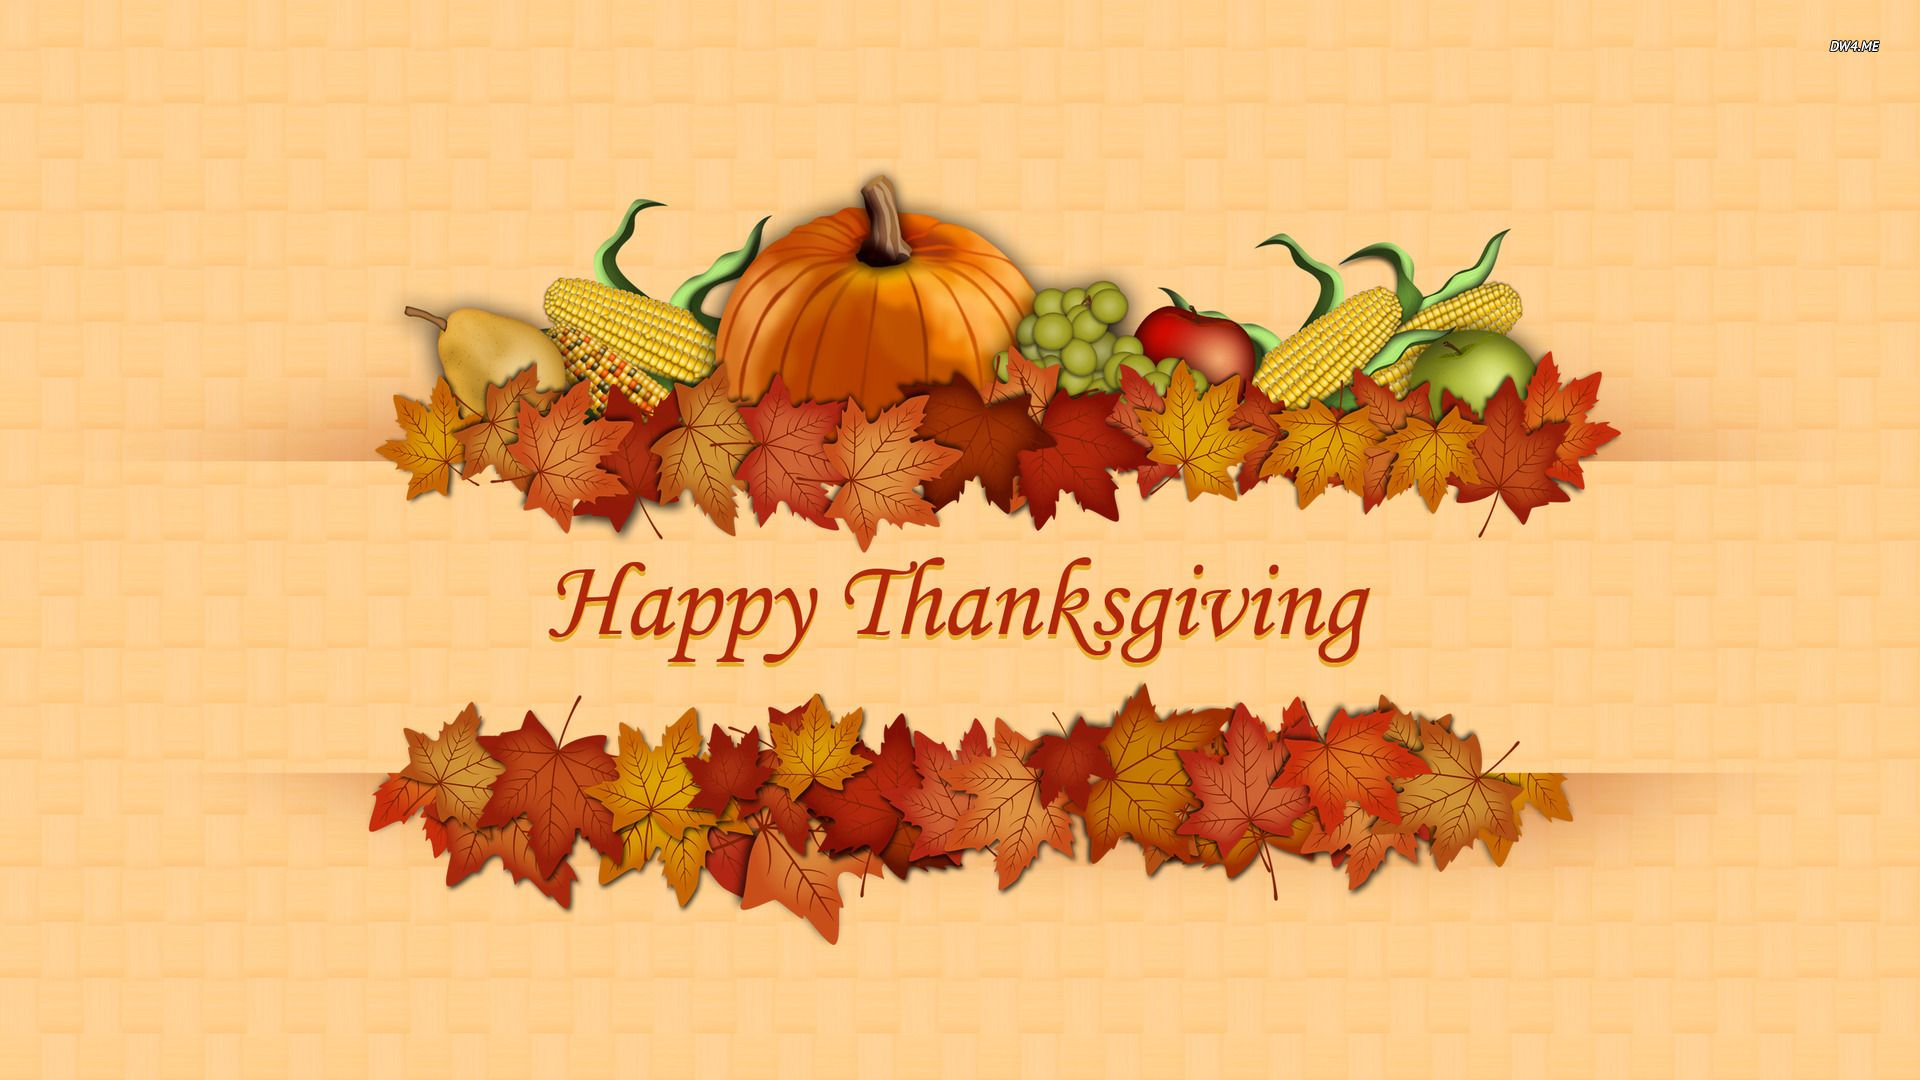 Free Thanksgiving Desktop Backgrounds | Free Happy Thanksgiving Desktop Wallpaper | Fall ...